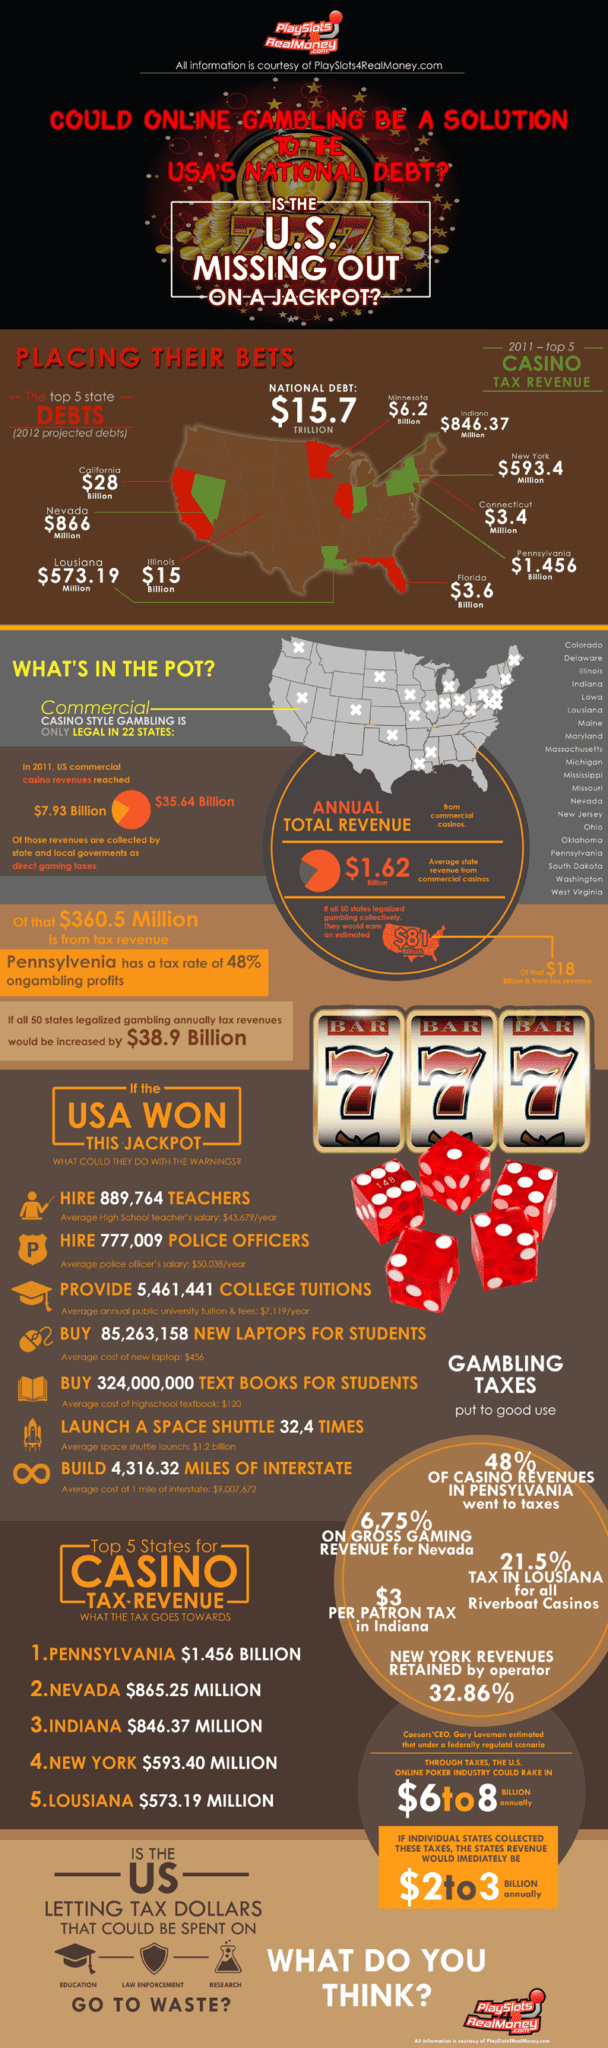 best online casino bonuses usa